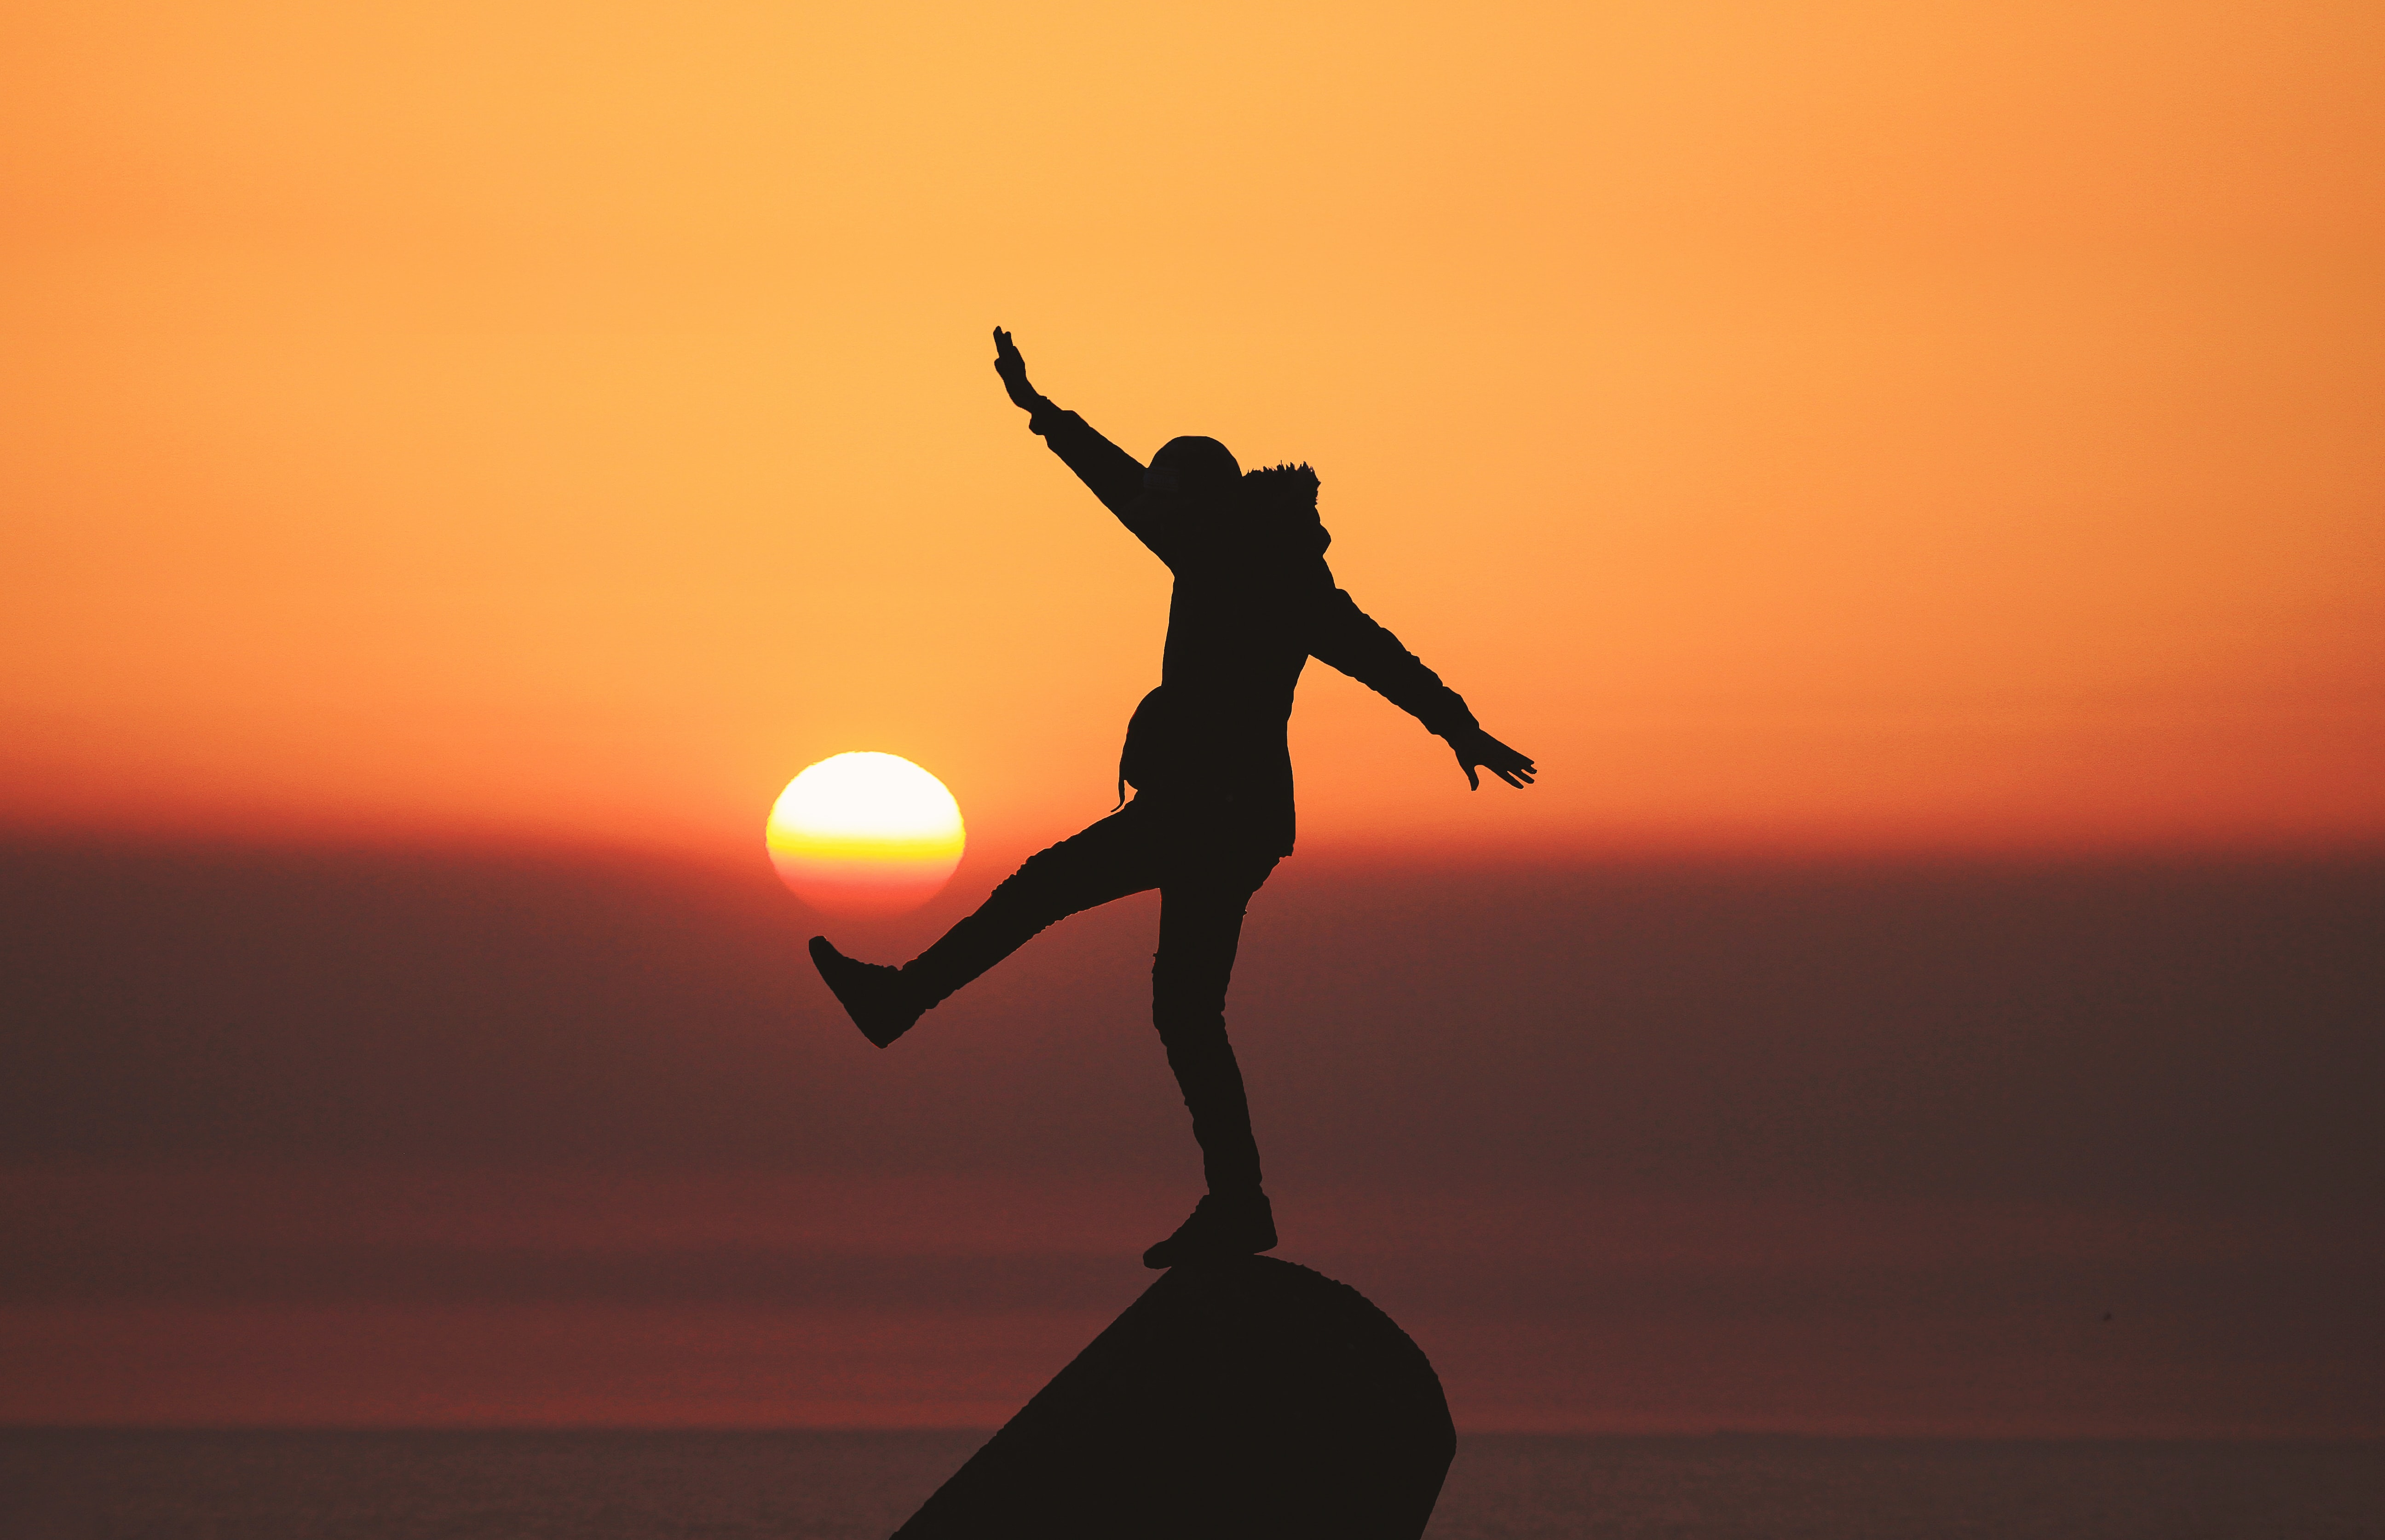 A silhouette of a person is outlined against an orange sunset - they look like they're kicking the sun. c. Aziz Achark, Unsplash